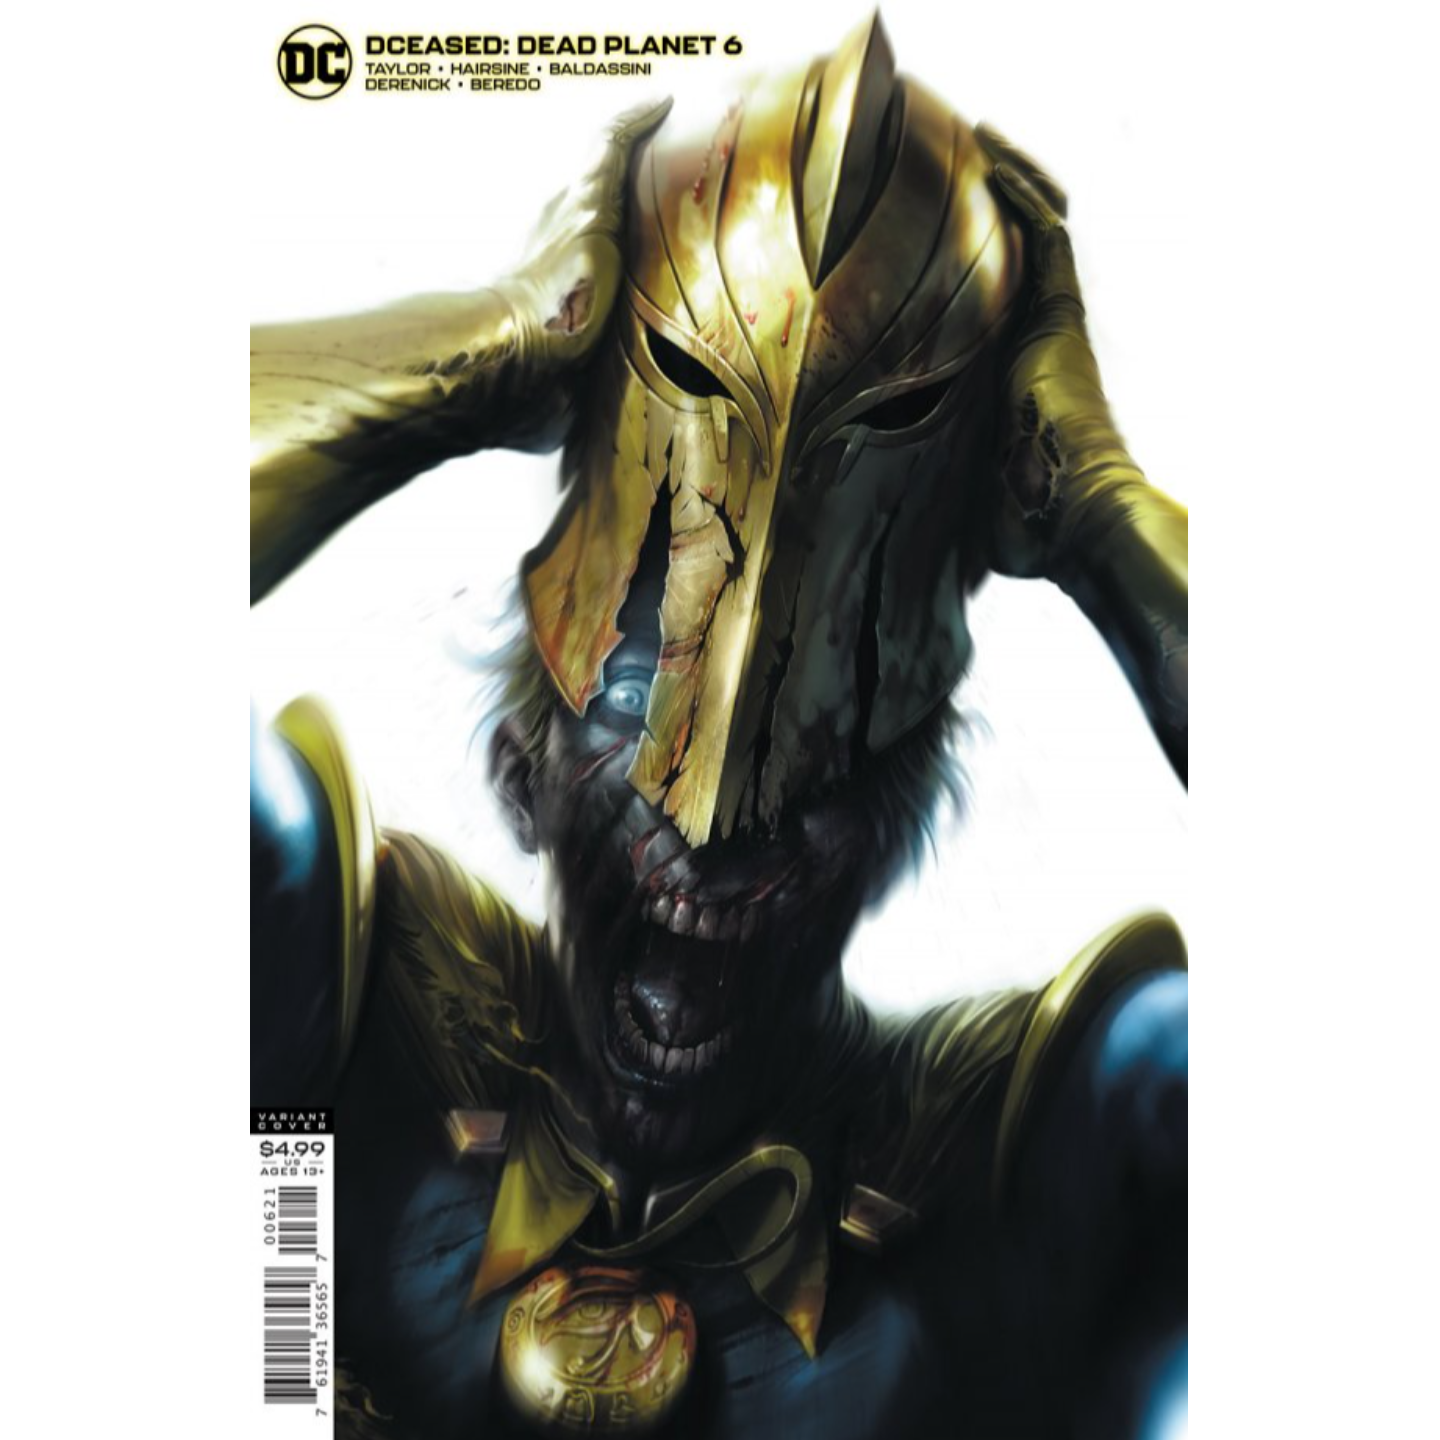 DCEASED DEAD PLANET #6 (OF 7) CVR B FRANCESCO MATTINA CARD STOCK VAR